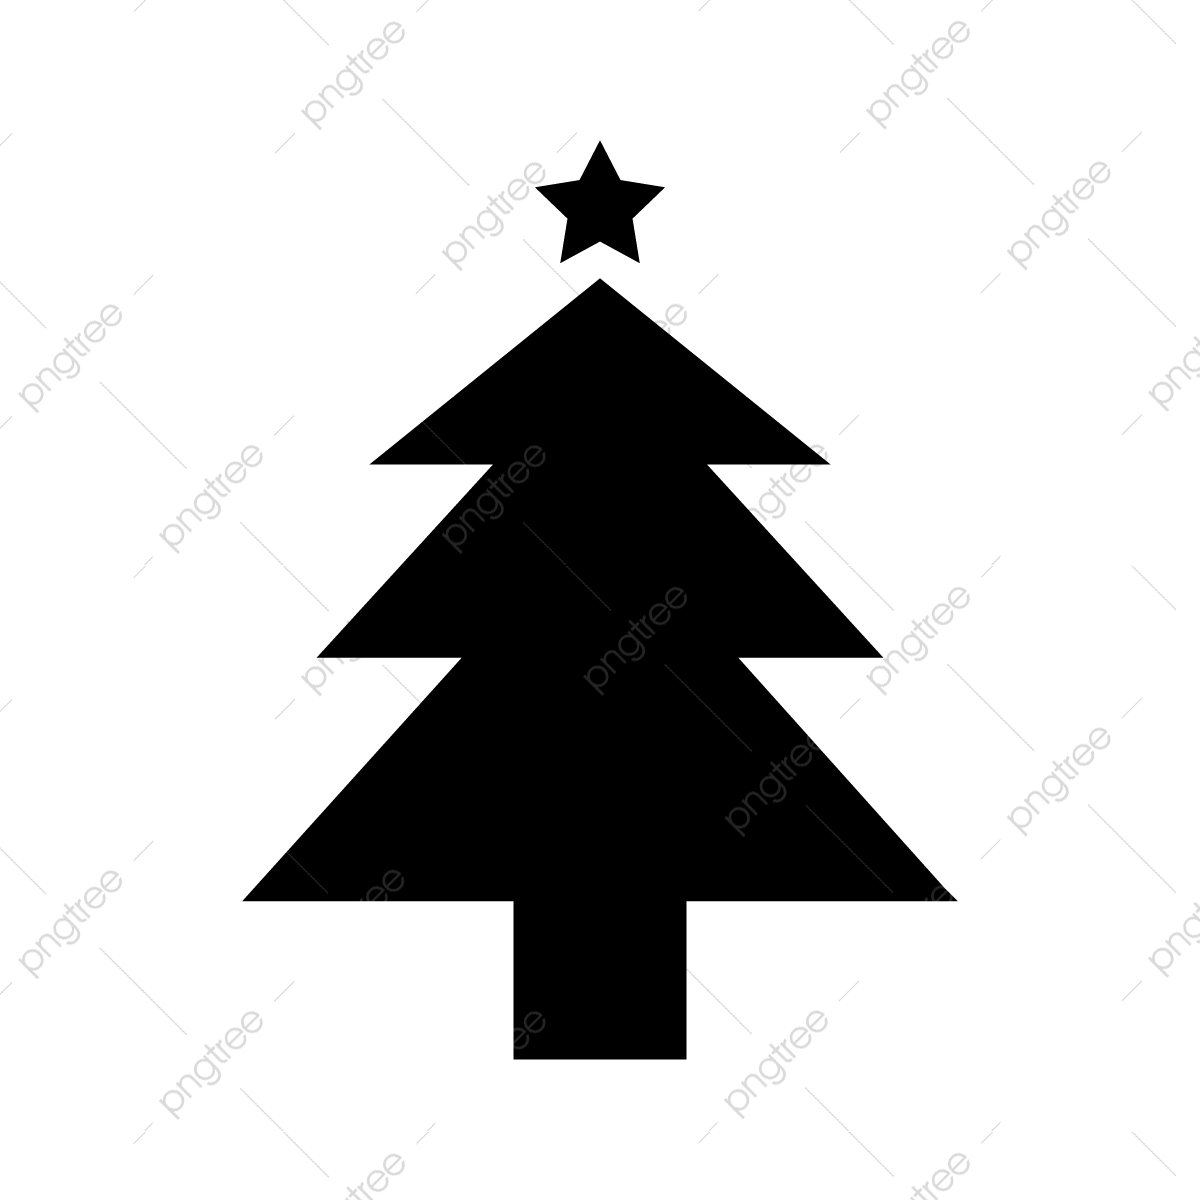 christmas tree icon christmas icons tree icons christmas png and vector with transparent background for free download https pngtree com freepng christmas tree icon 5145266 html